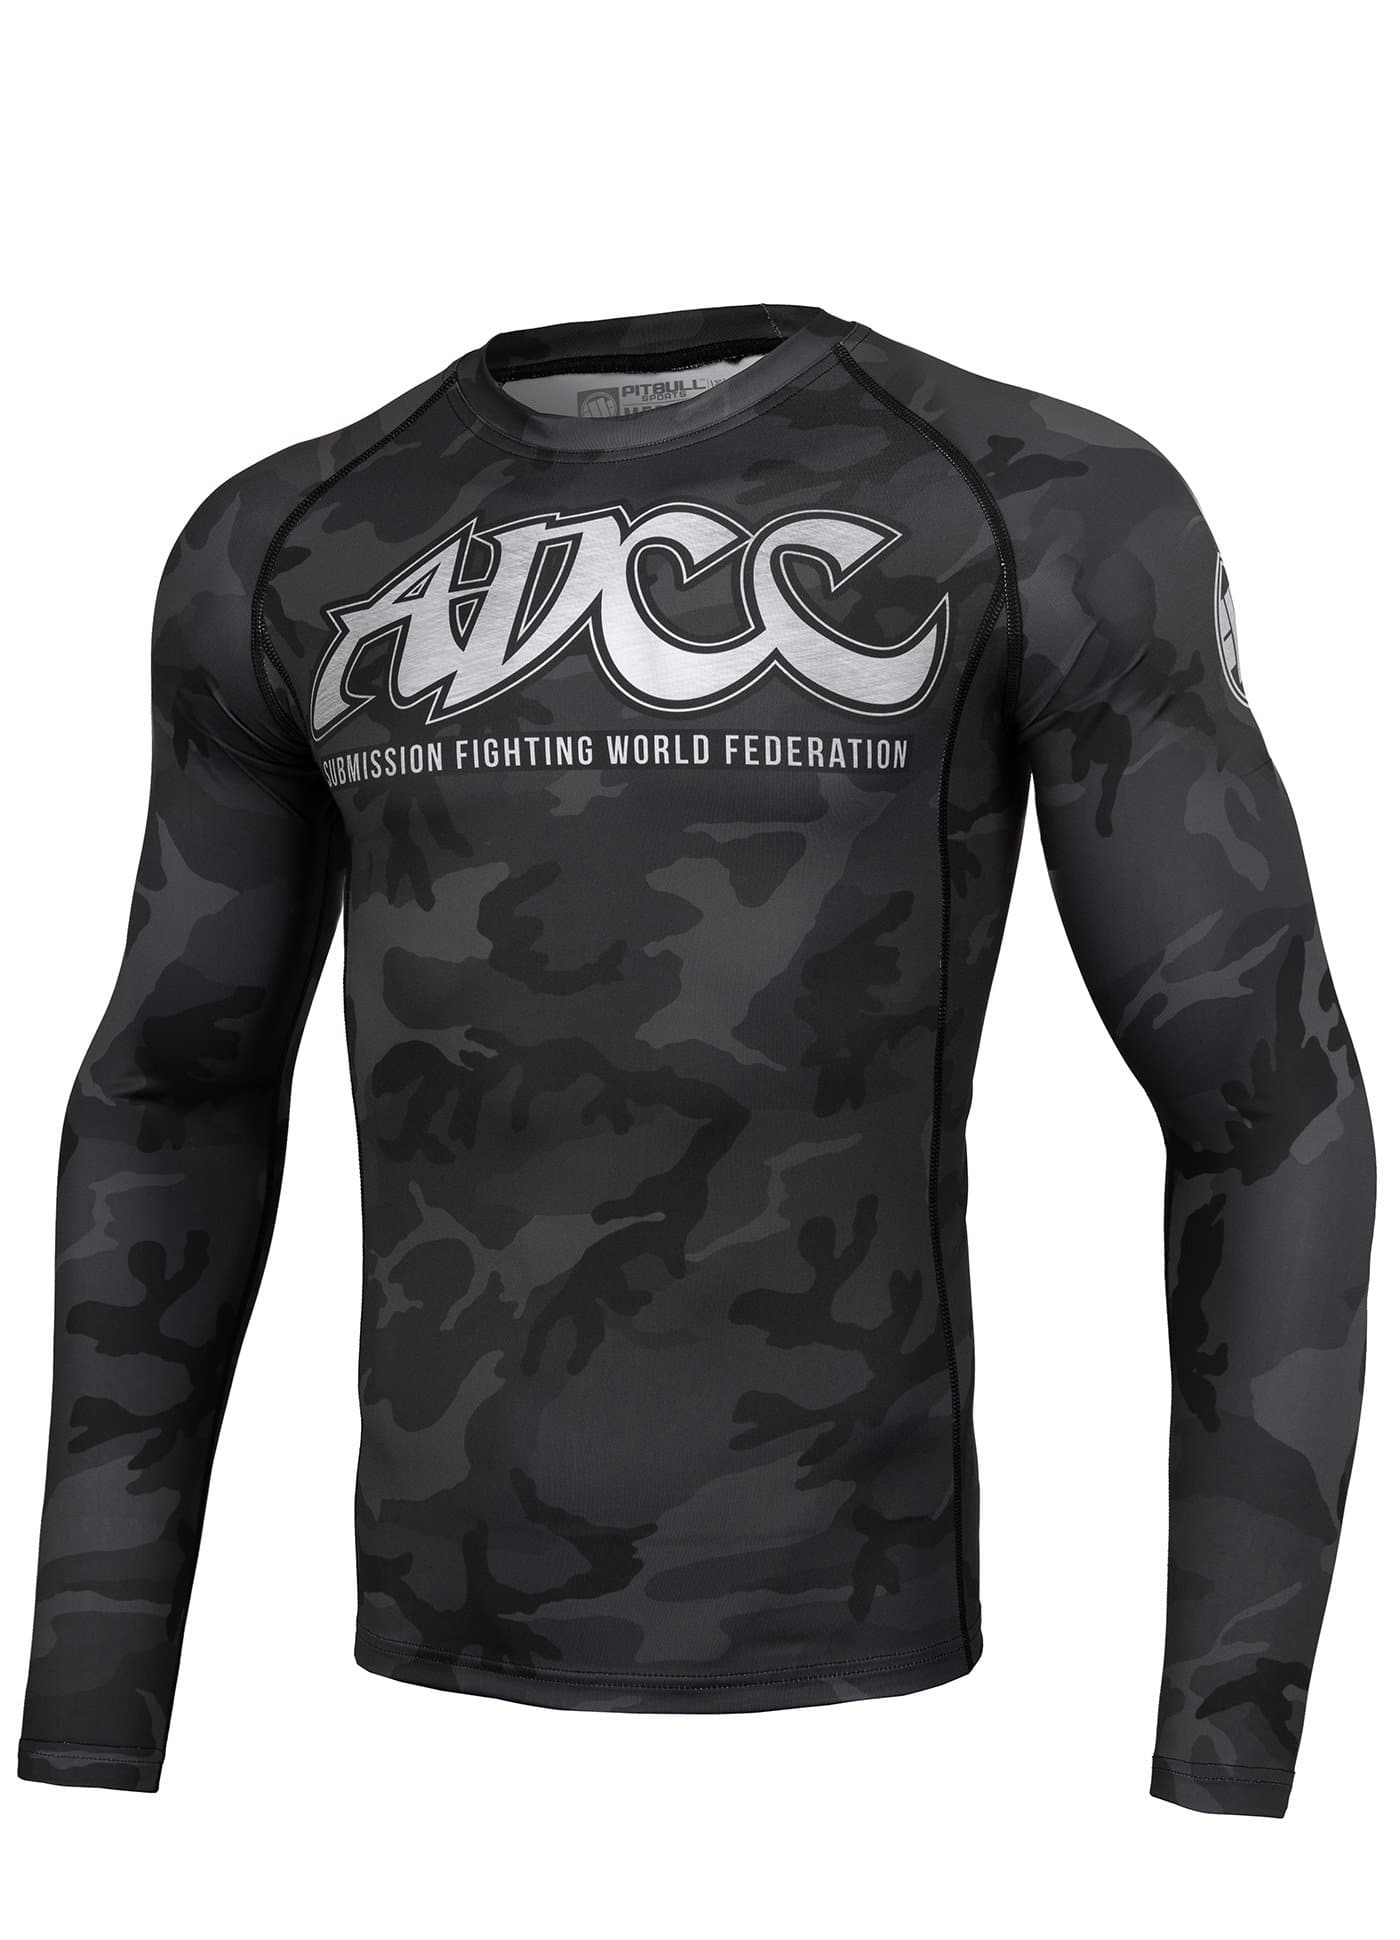 ADCC ALL BLACK Long Sleeve Rashguard - kup z Pit Bull West Coast Oficjalny Sklep